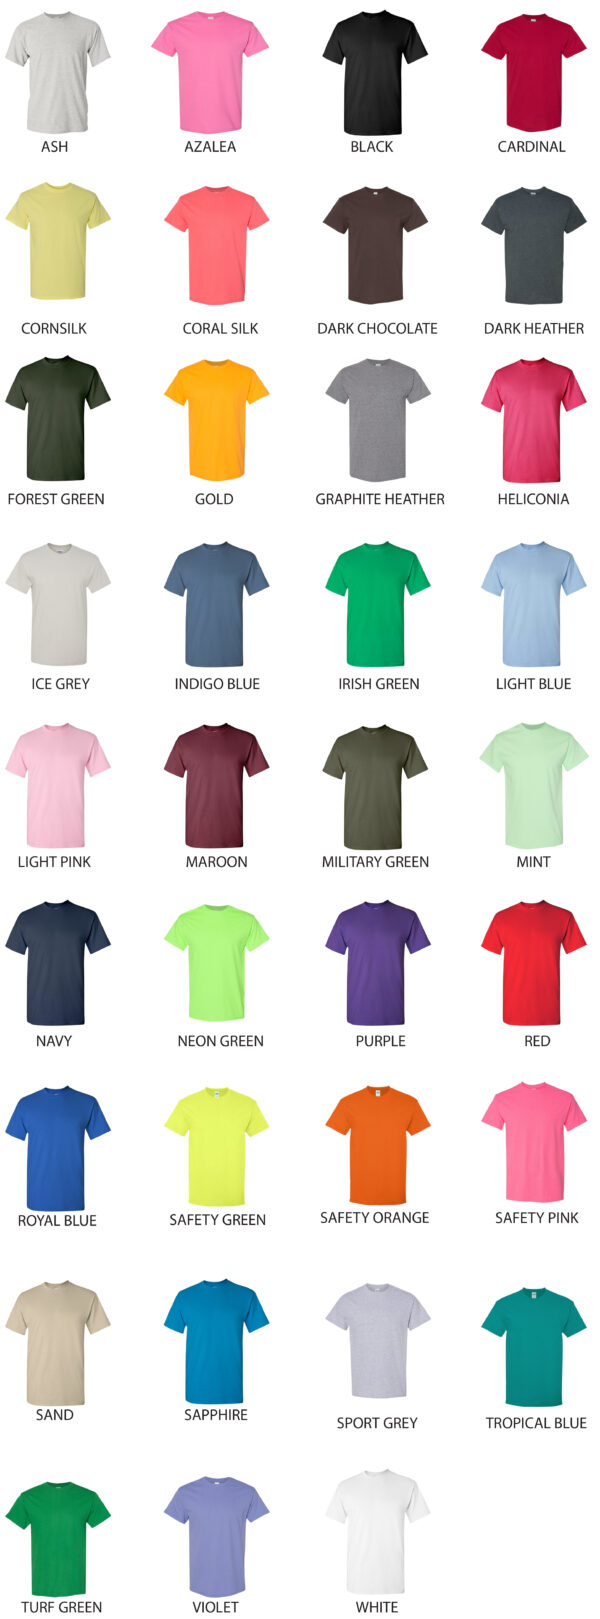 Miscellaneous T-Shirt